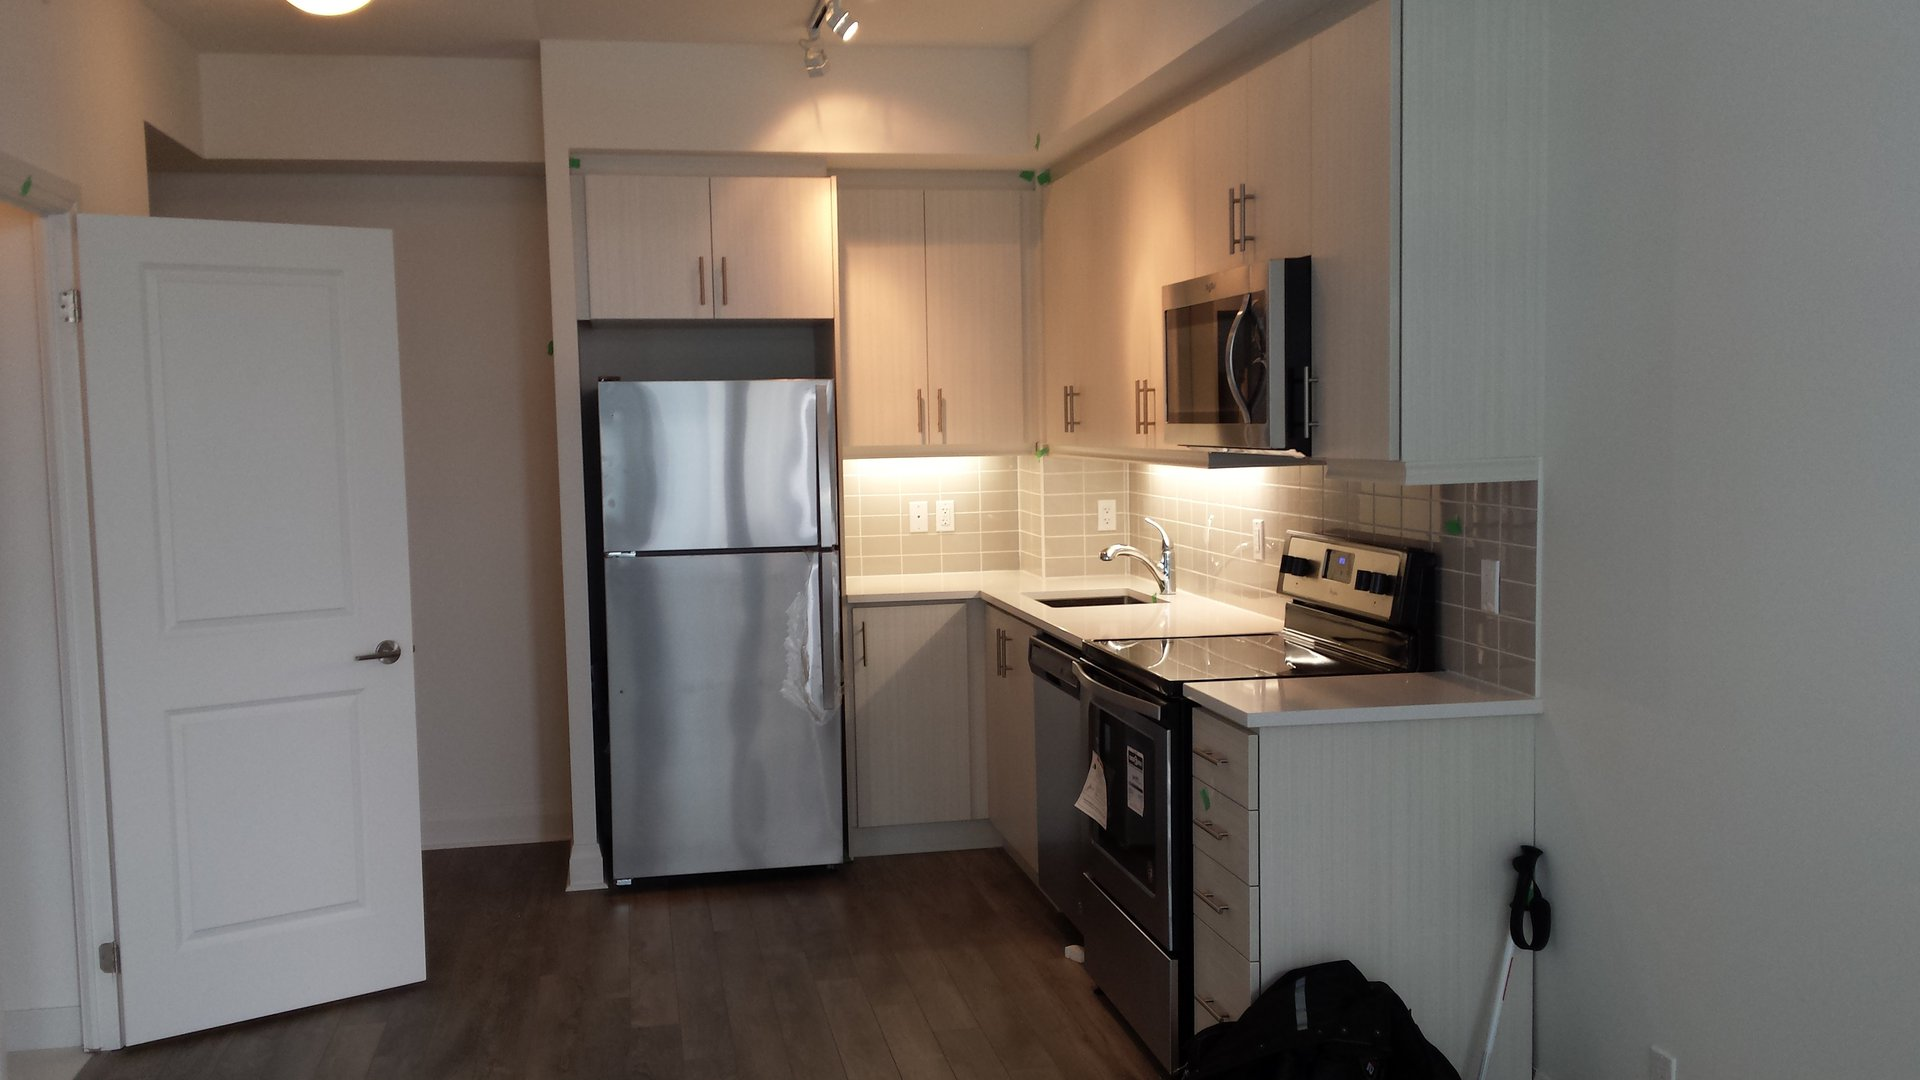 Condo for rent at 17 Zorra St | Unit: 1001, Etobicoke, ON. This is the kitchen with hardwood floor and stainless steel.